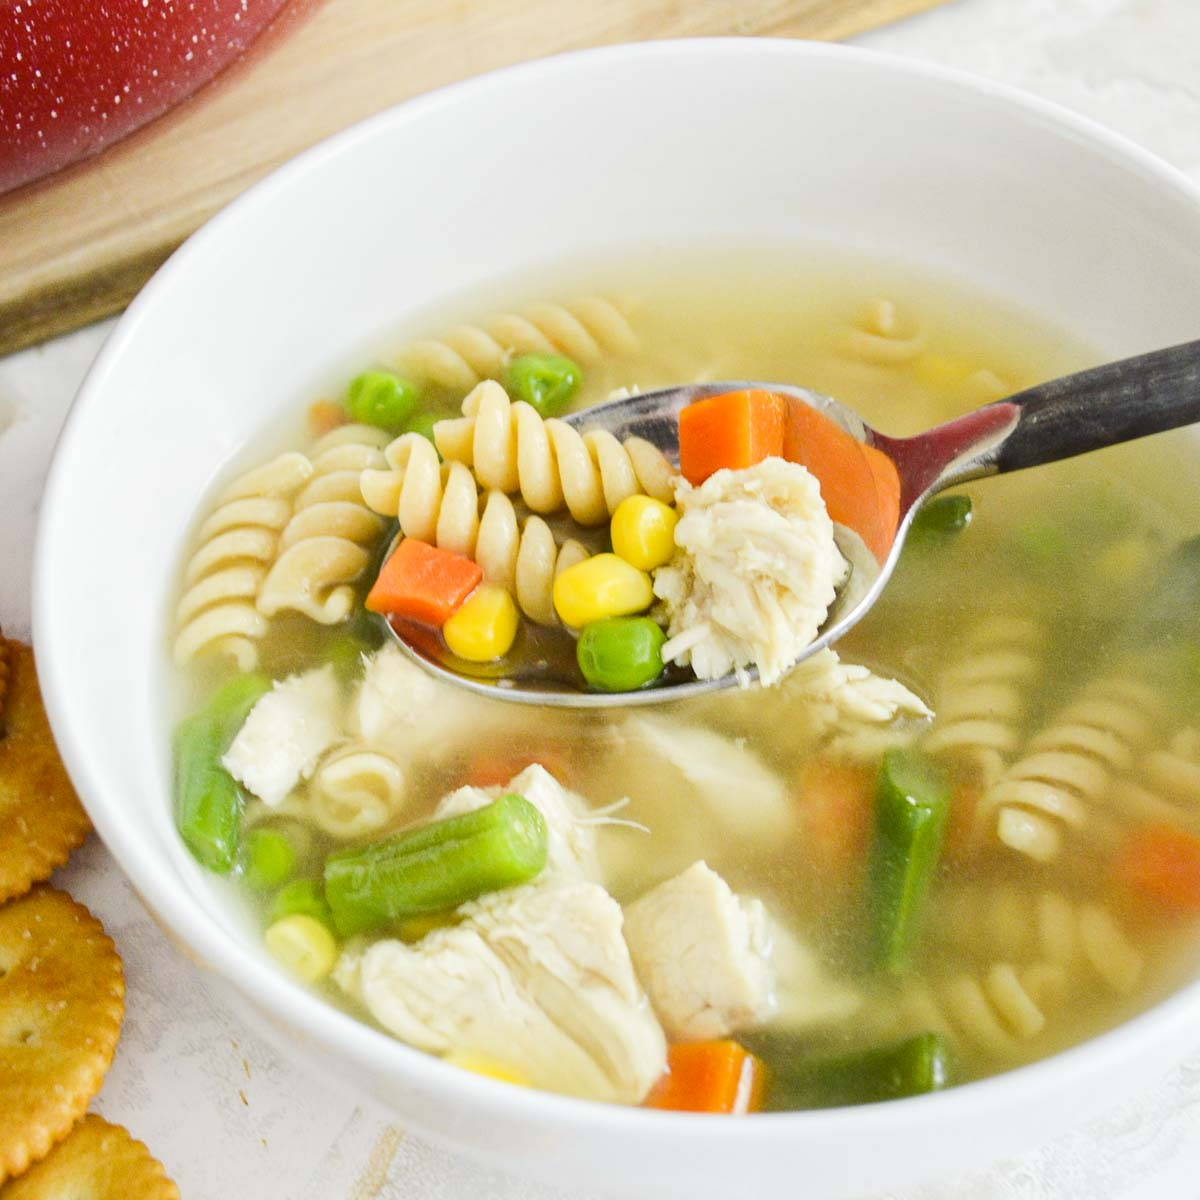 Spoon of chicken noodle soup with vegetables